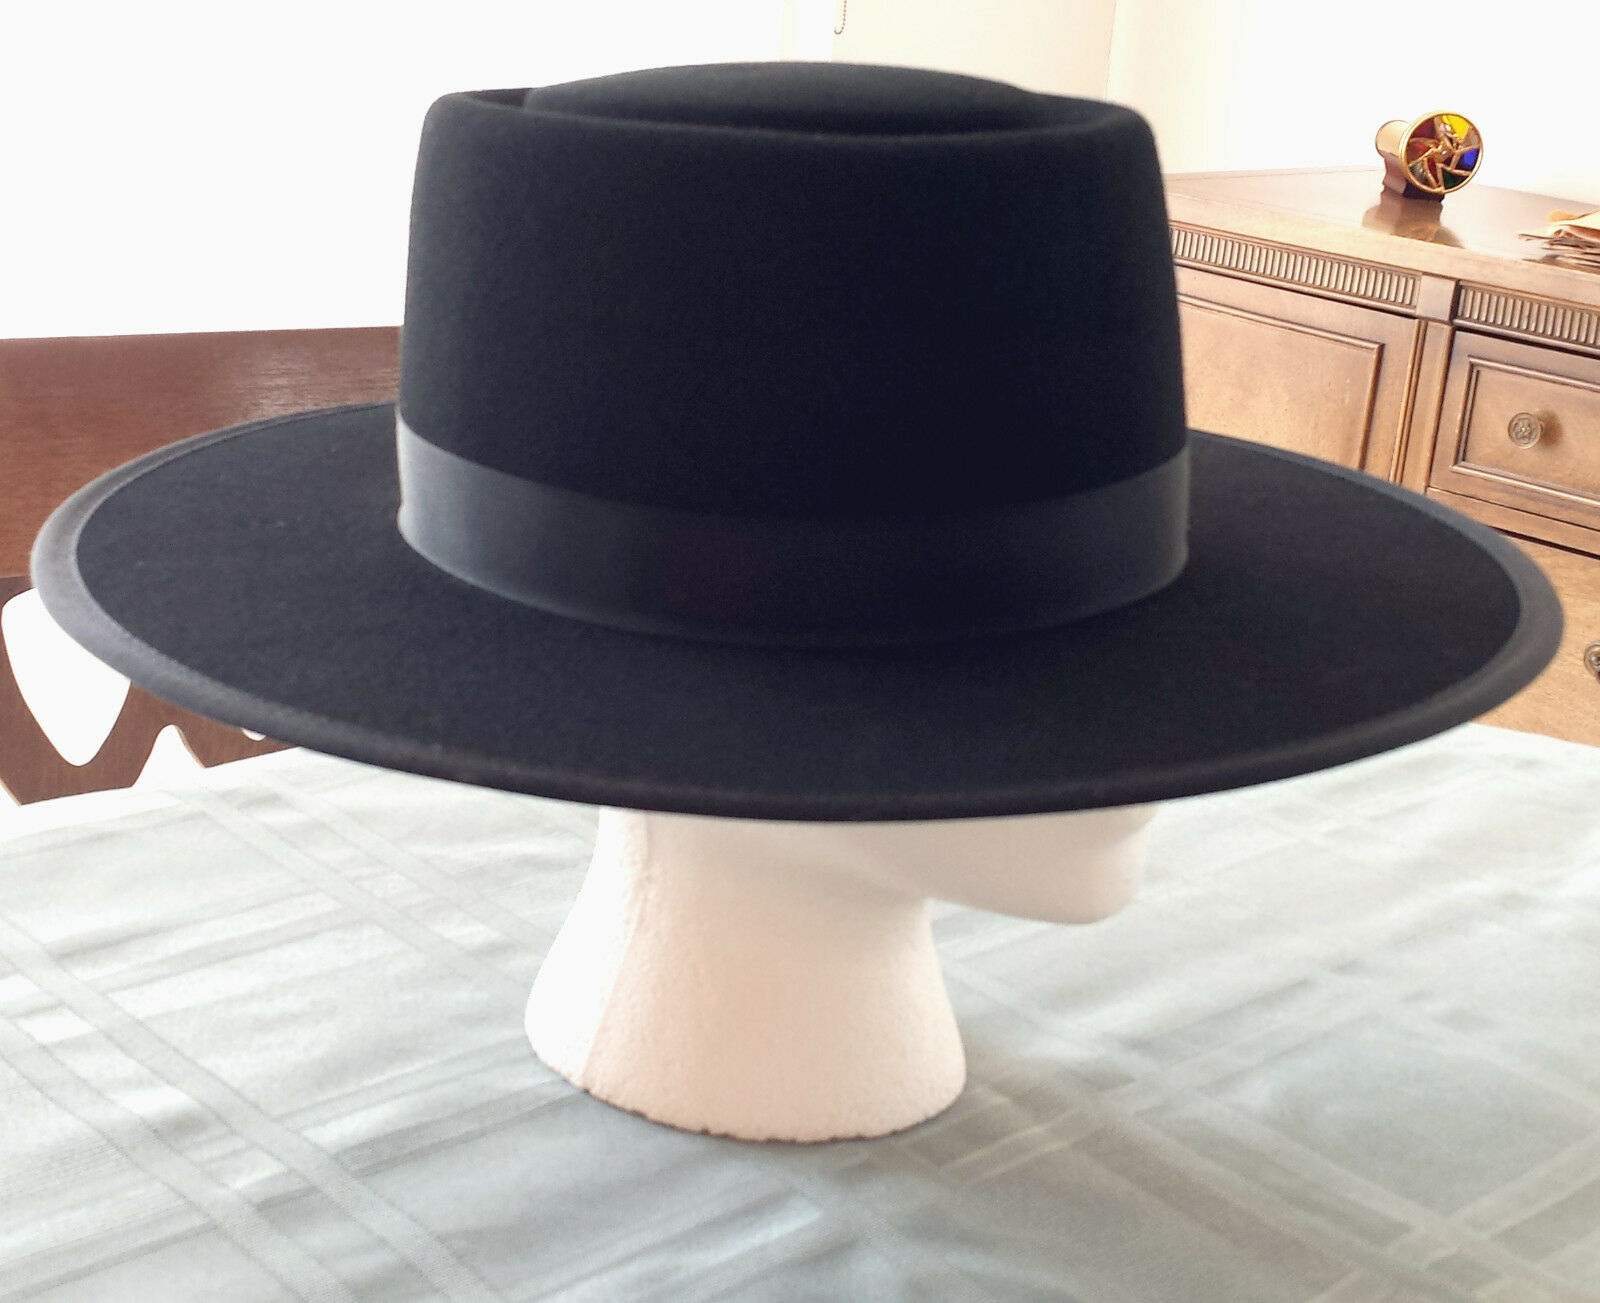 fb02edf32 Men's Authentic Amish Black Felt Hat made in Lancaster County, PA